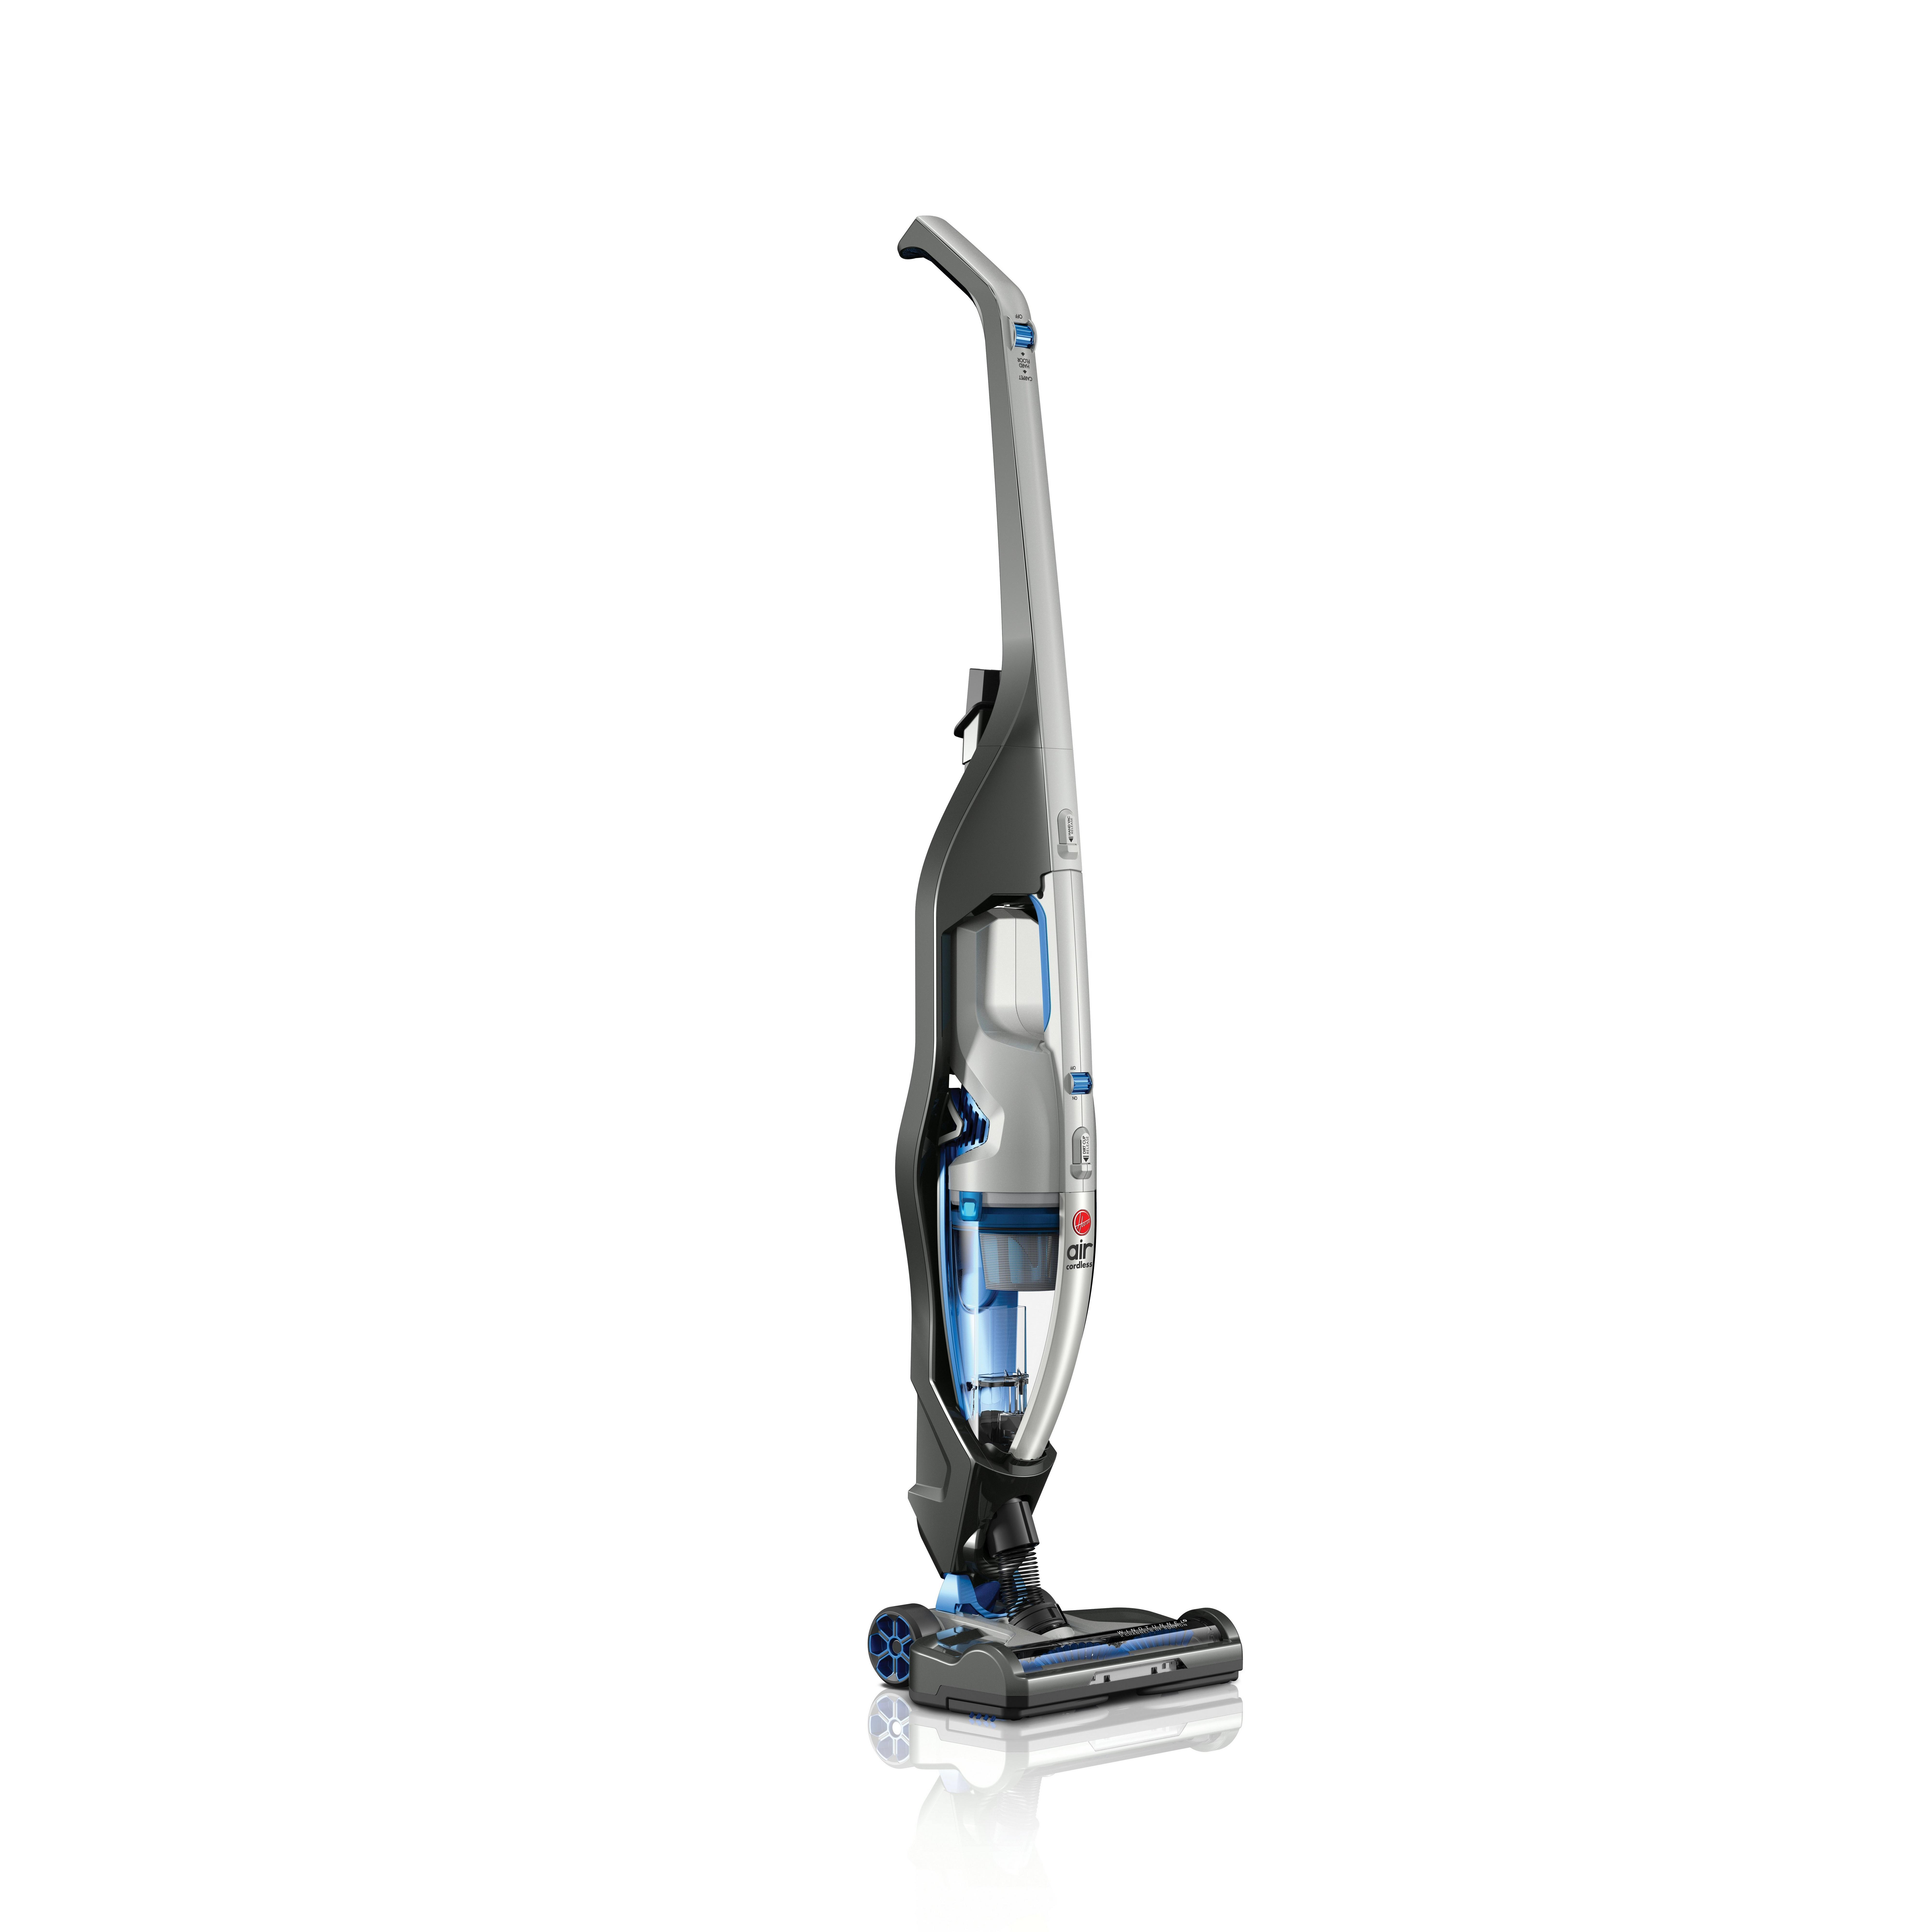 Hoover Air Cleaners : Hoover air cordless in stick and handheld vacuum